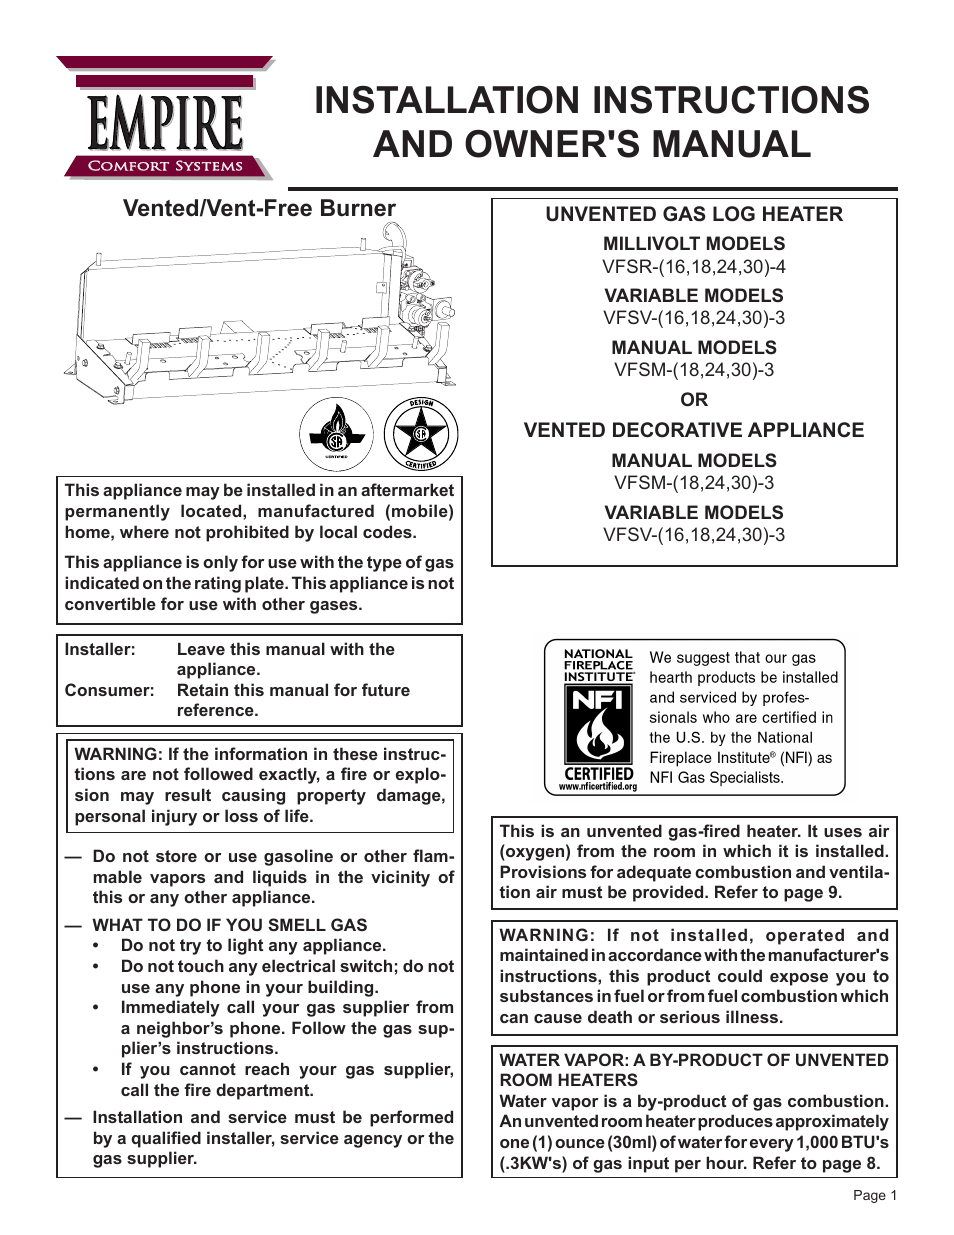 empire comfort systems vfsr 24 3 user manual 28 pages also for